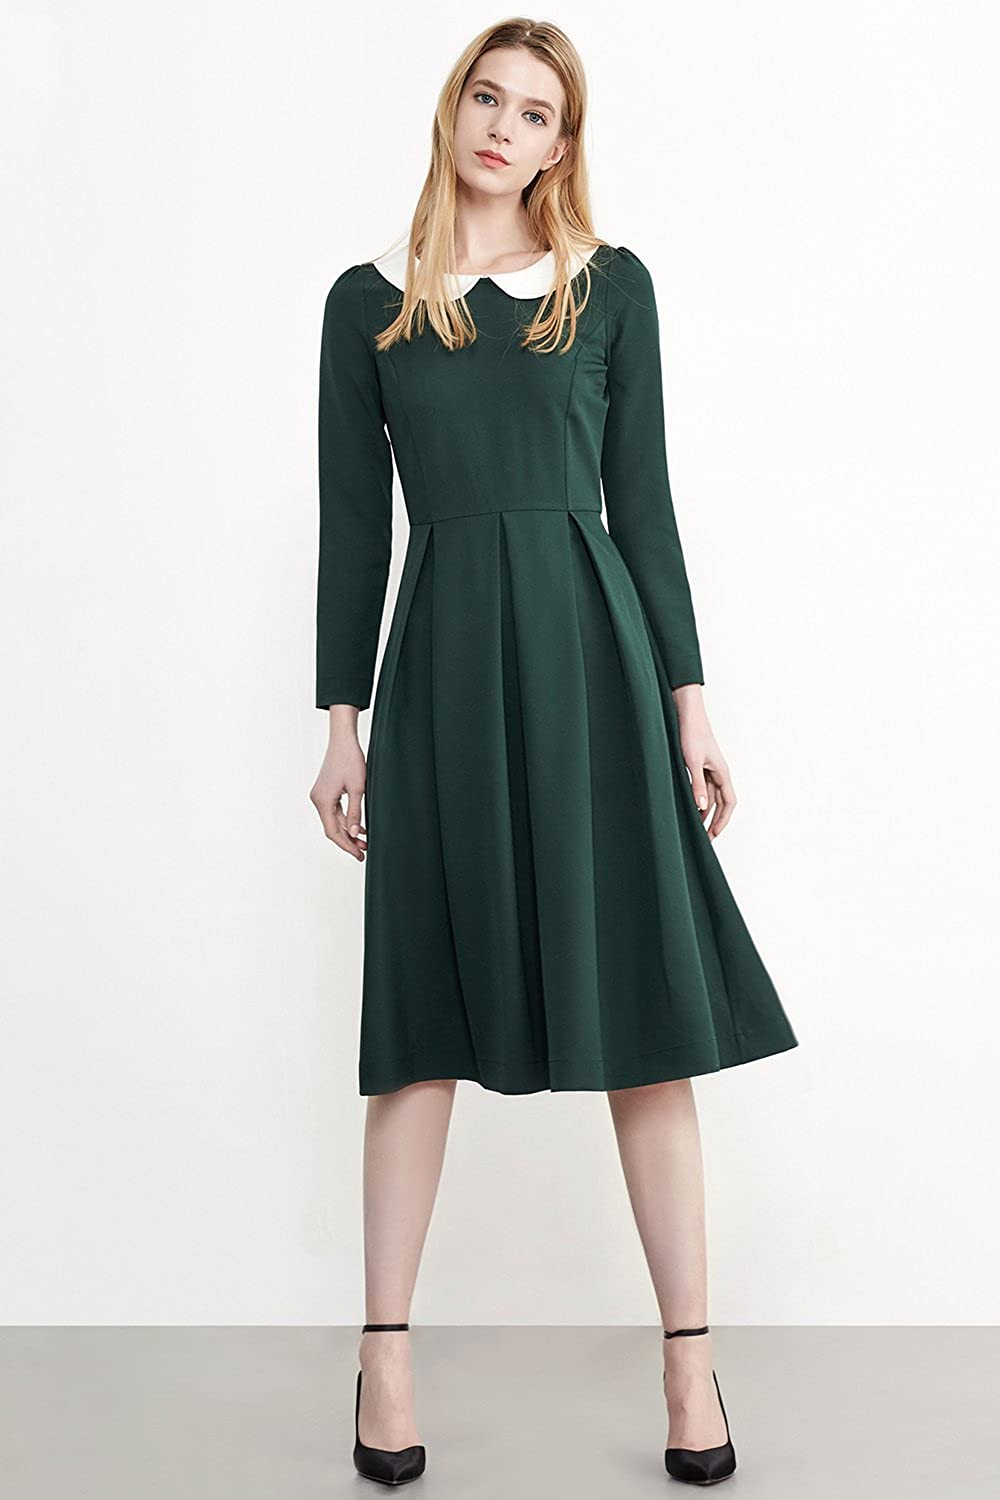 1930s Childrens Fashion: Girls, Boys, Toddler, Baby Costumes Simple Retro Elegant Peter Pan Collar Long Sleeves Casual Skater Swing Dress $19.99 AT vintagedancer.com